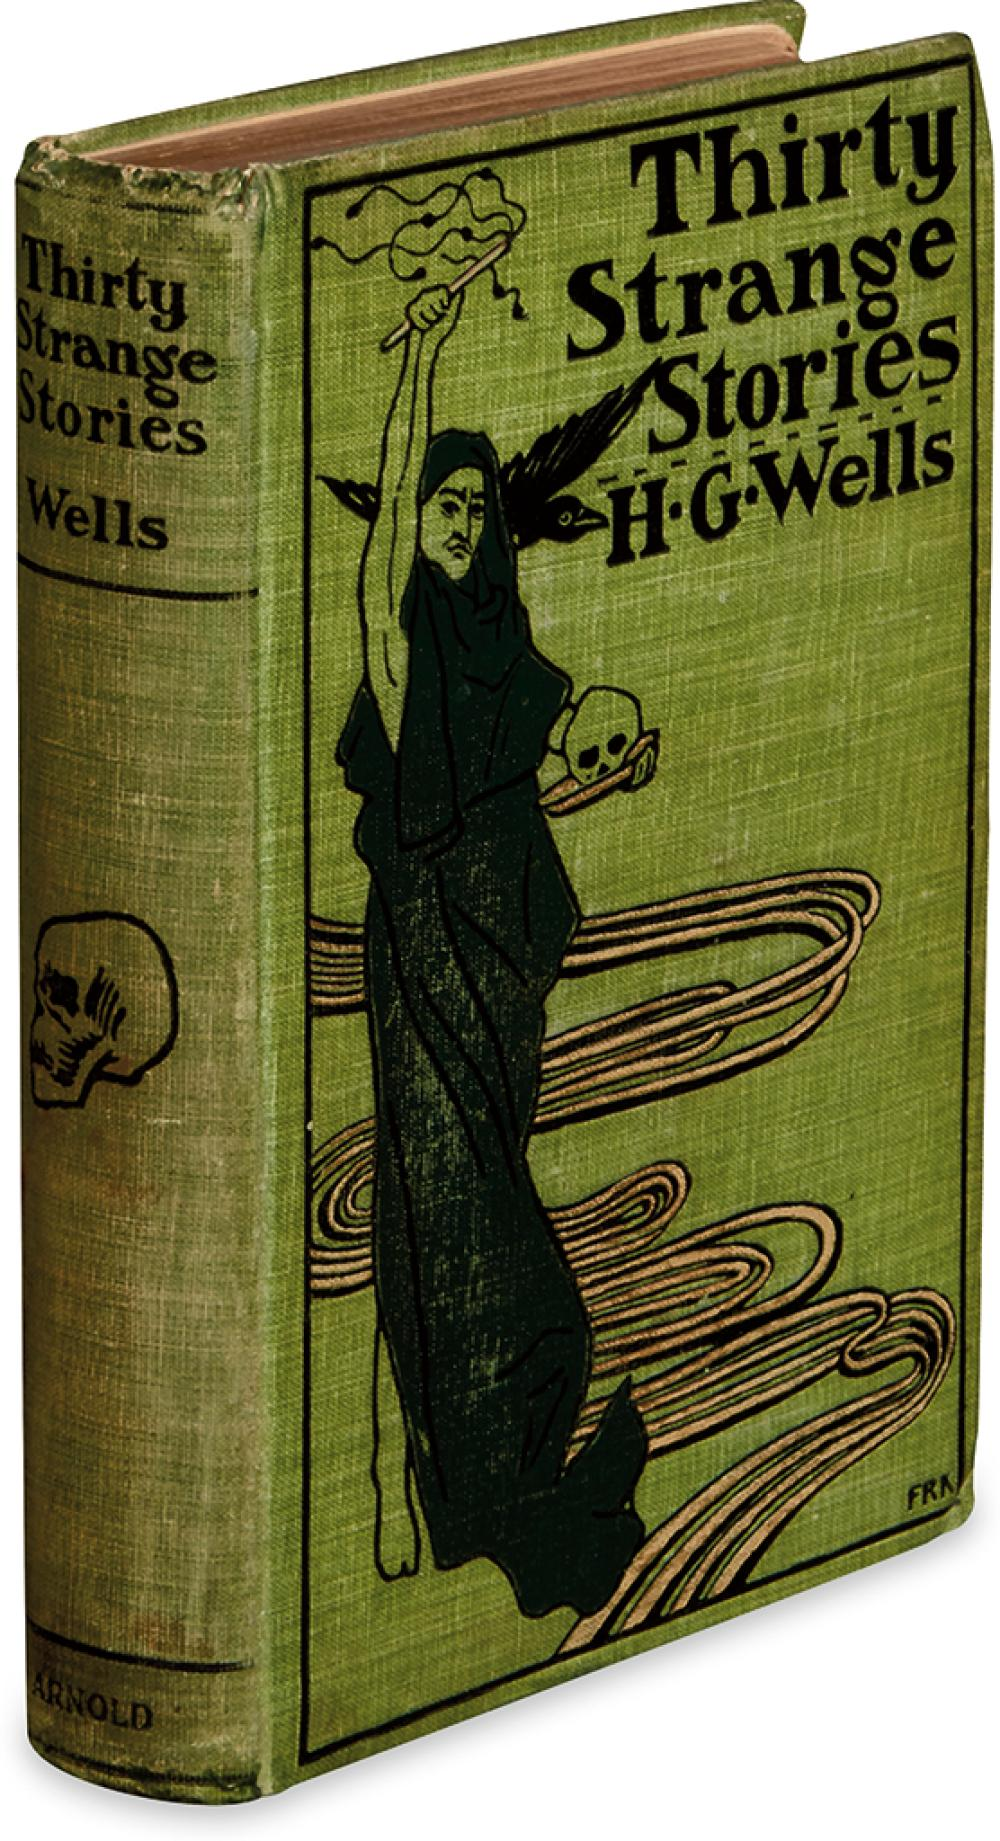 WELLS, H.G. Thirty Strange Stories.